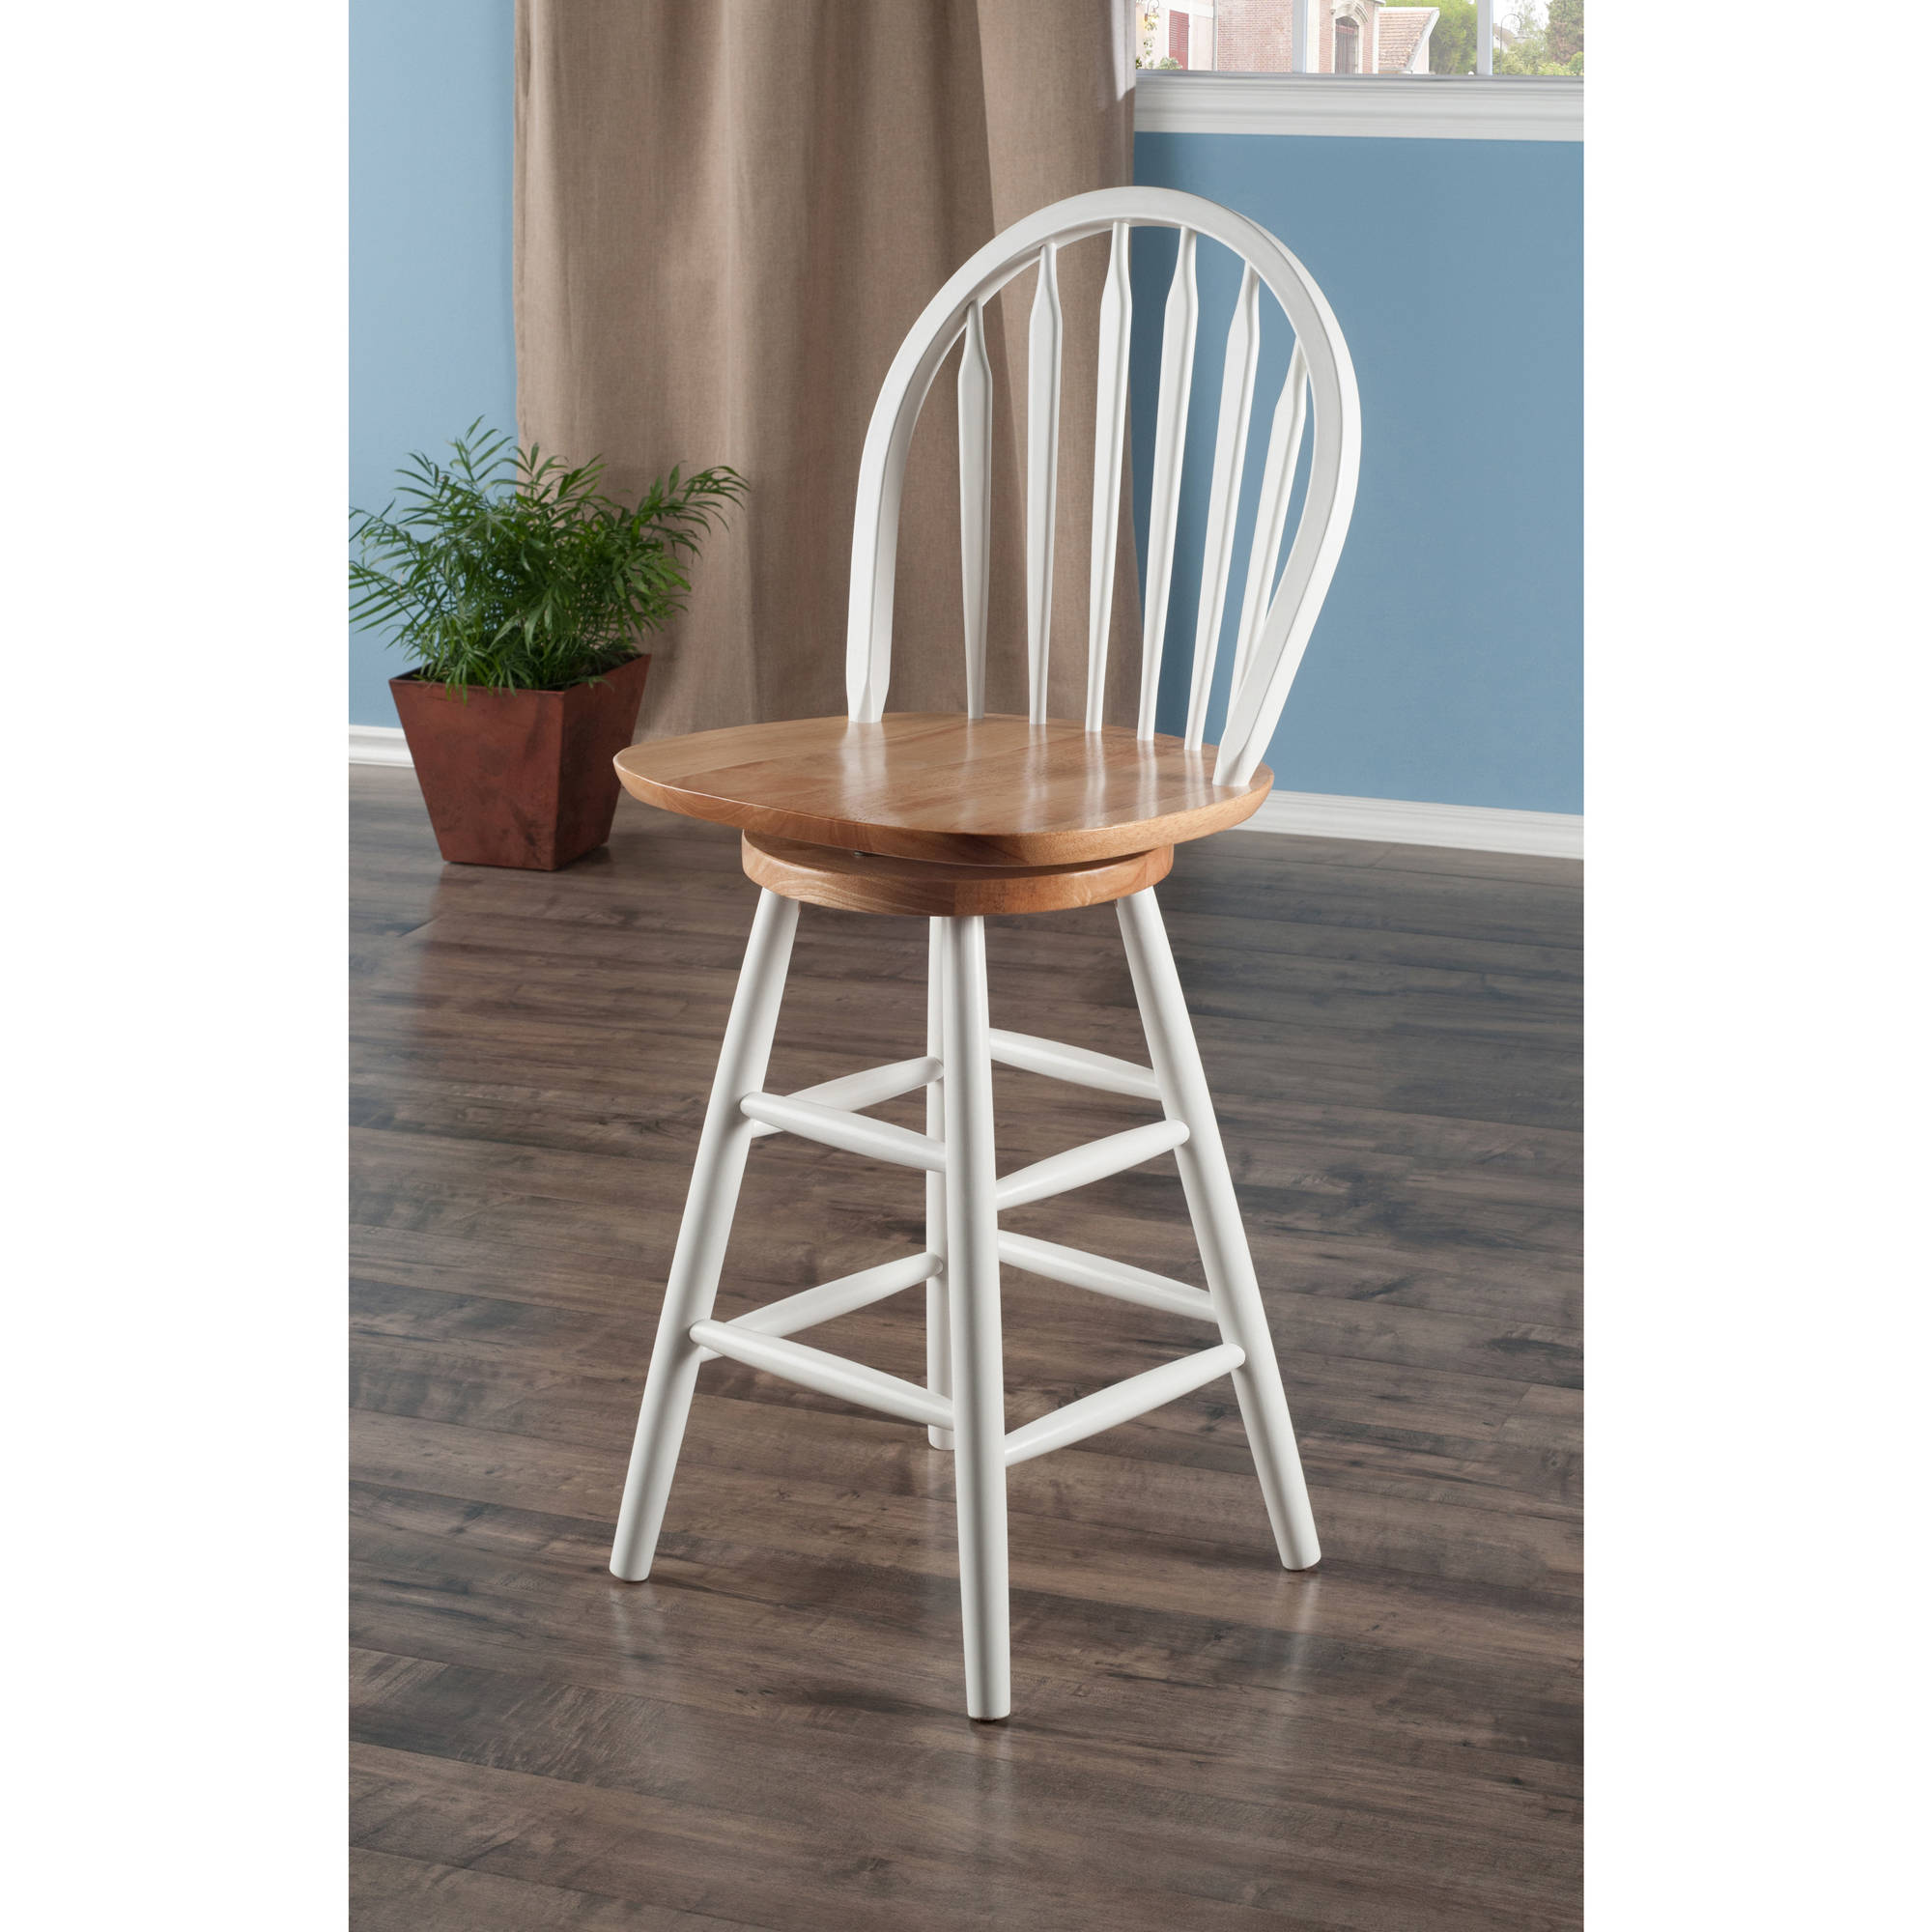 Arrowback Windsor Swivel Counter Stool 24'', Multiple Finishes